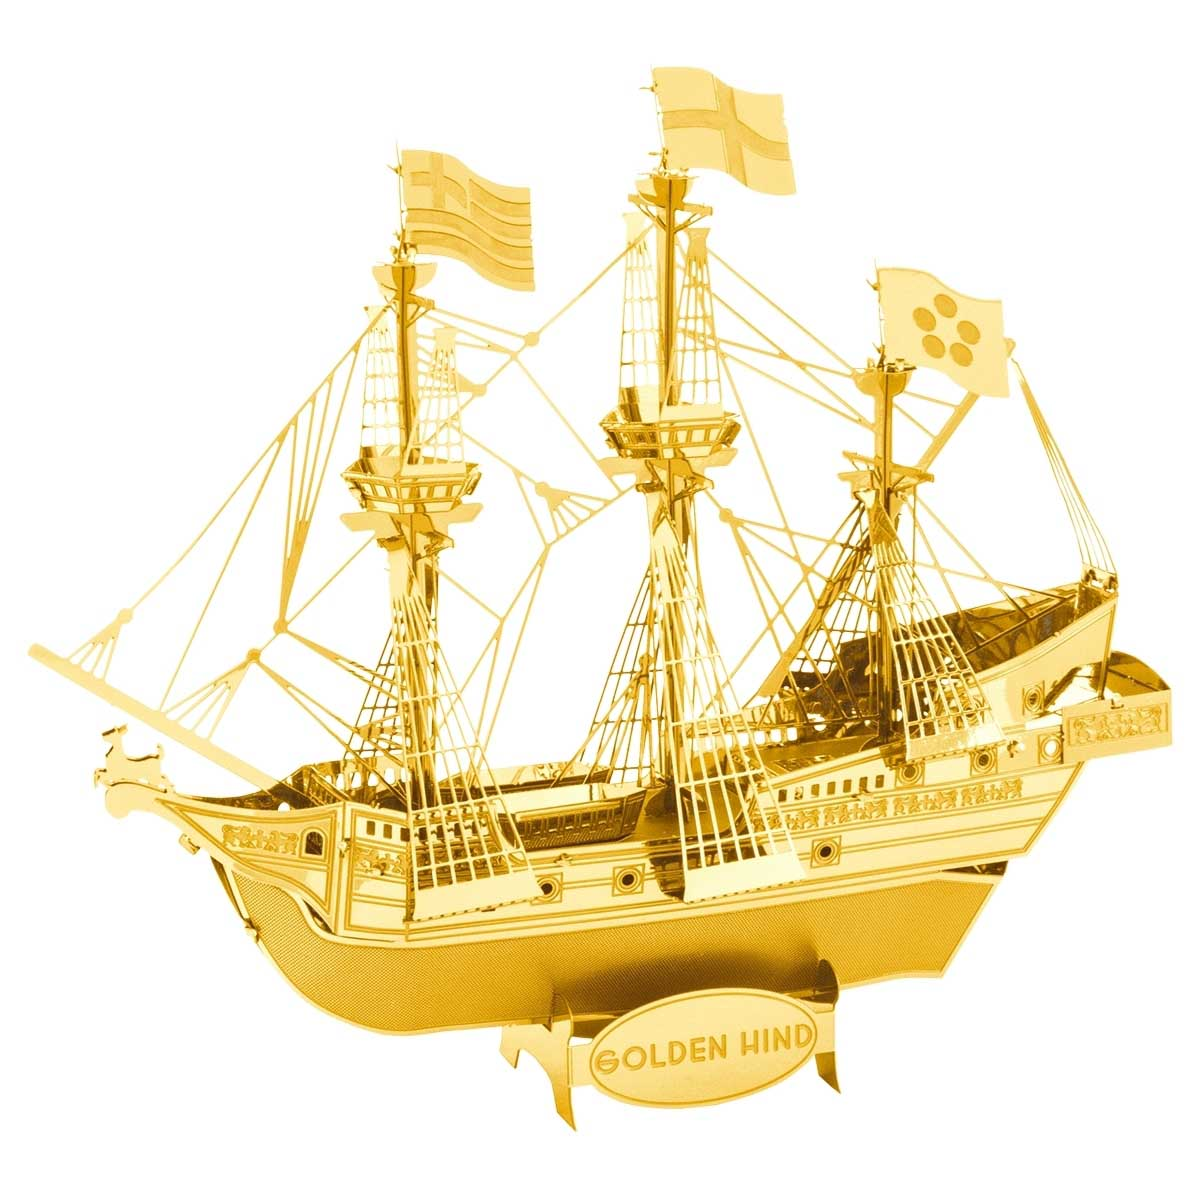 Gold Golden Hind ship Boats Metal Puzzles